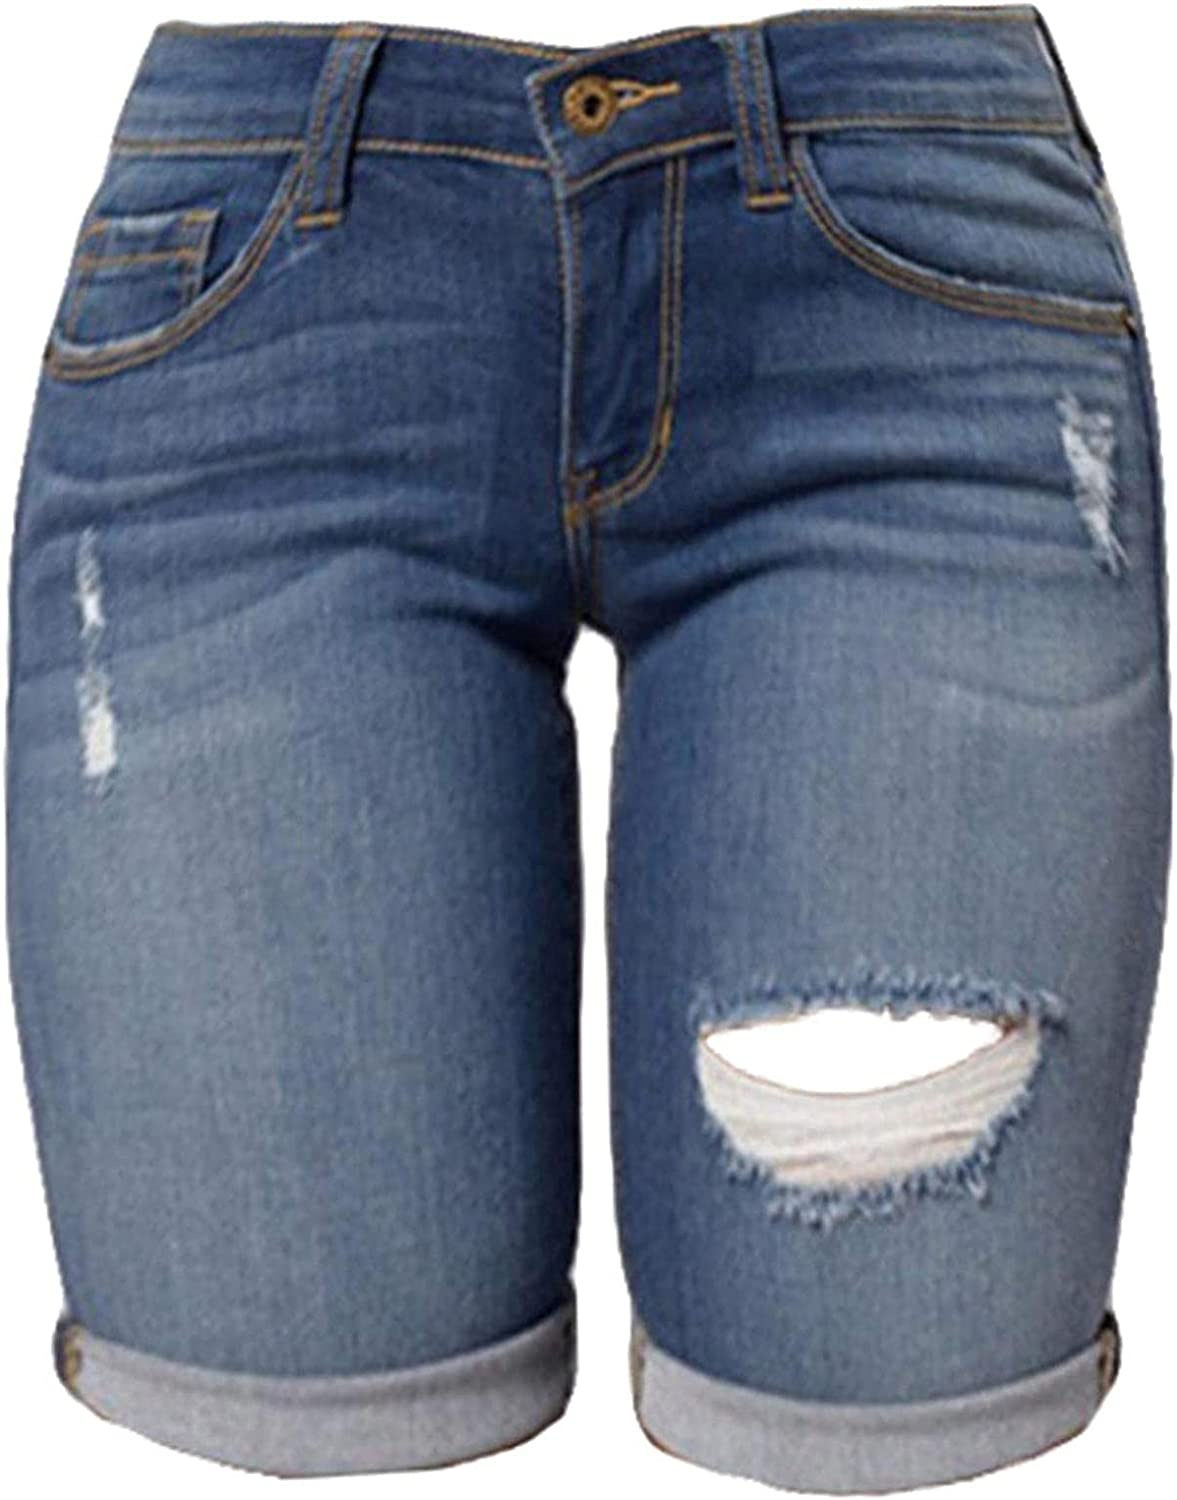 Womens Distressed Denim Capri Shorts Mid Waisted Ripped Destroyed Bermuda Jeans Plus Size Shorts